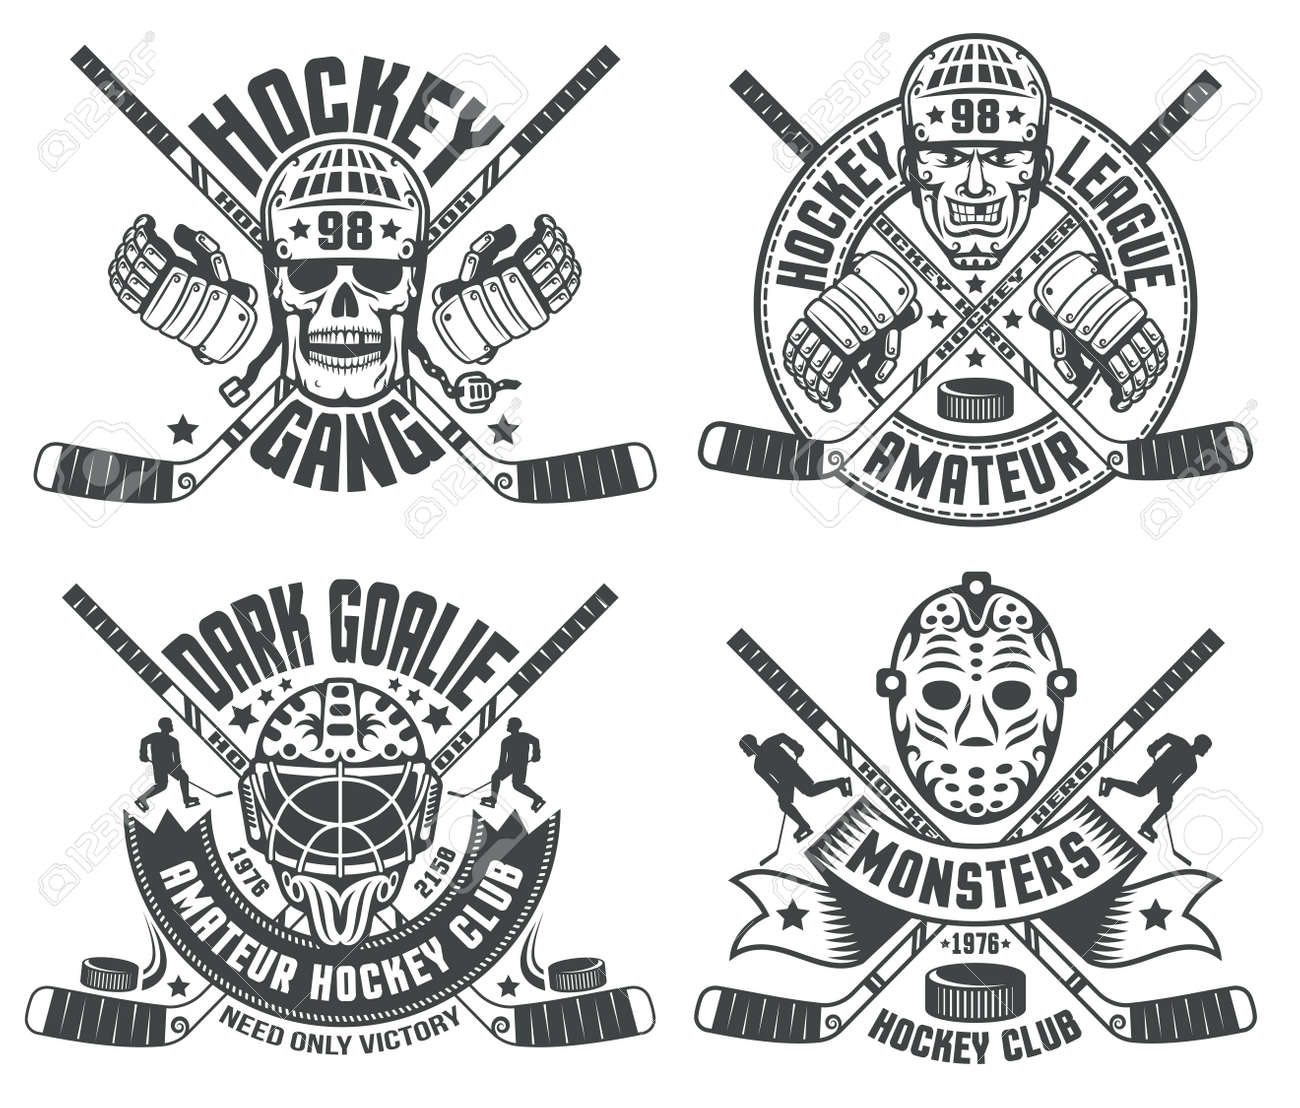 Hockey Logos Hockey Logos With Helmets Goalie Masks Sticks Hockey Gauntlet